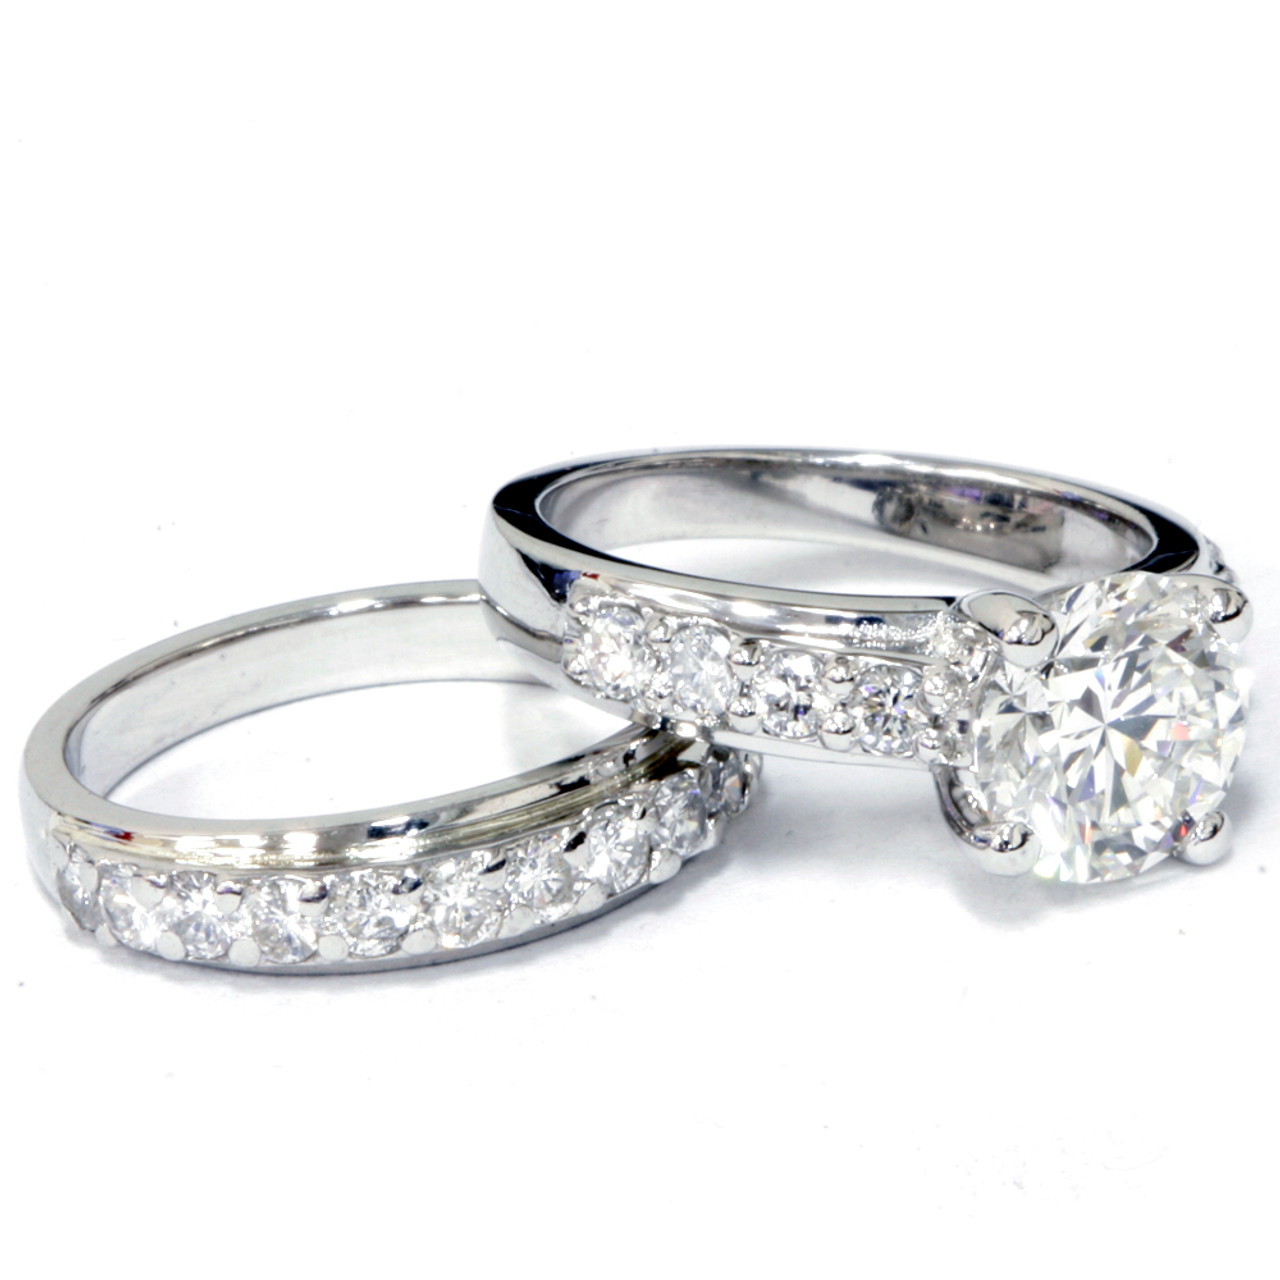 14k white gold over 3ct round diamond solitaire engagement ring wedding band